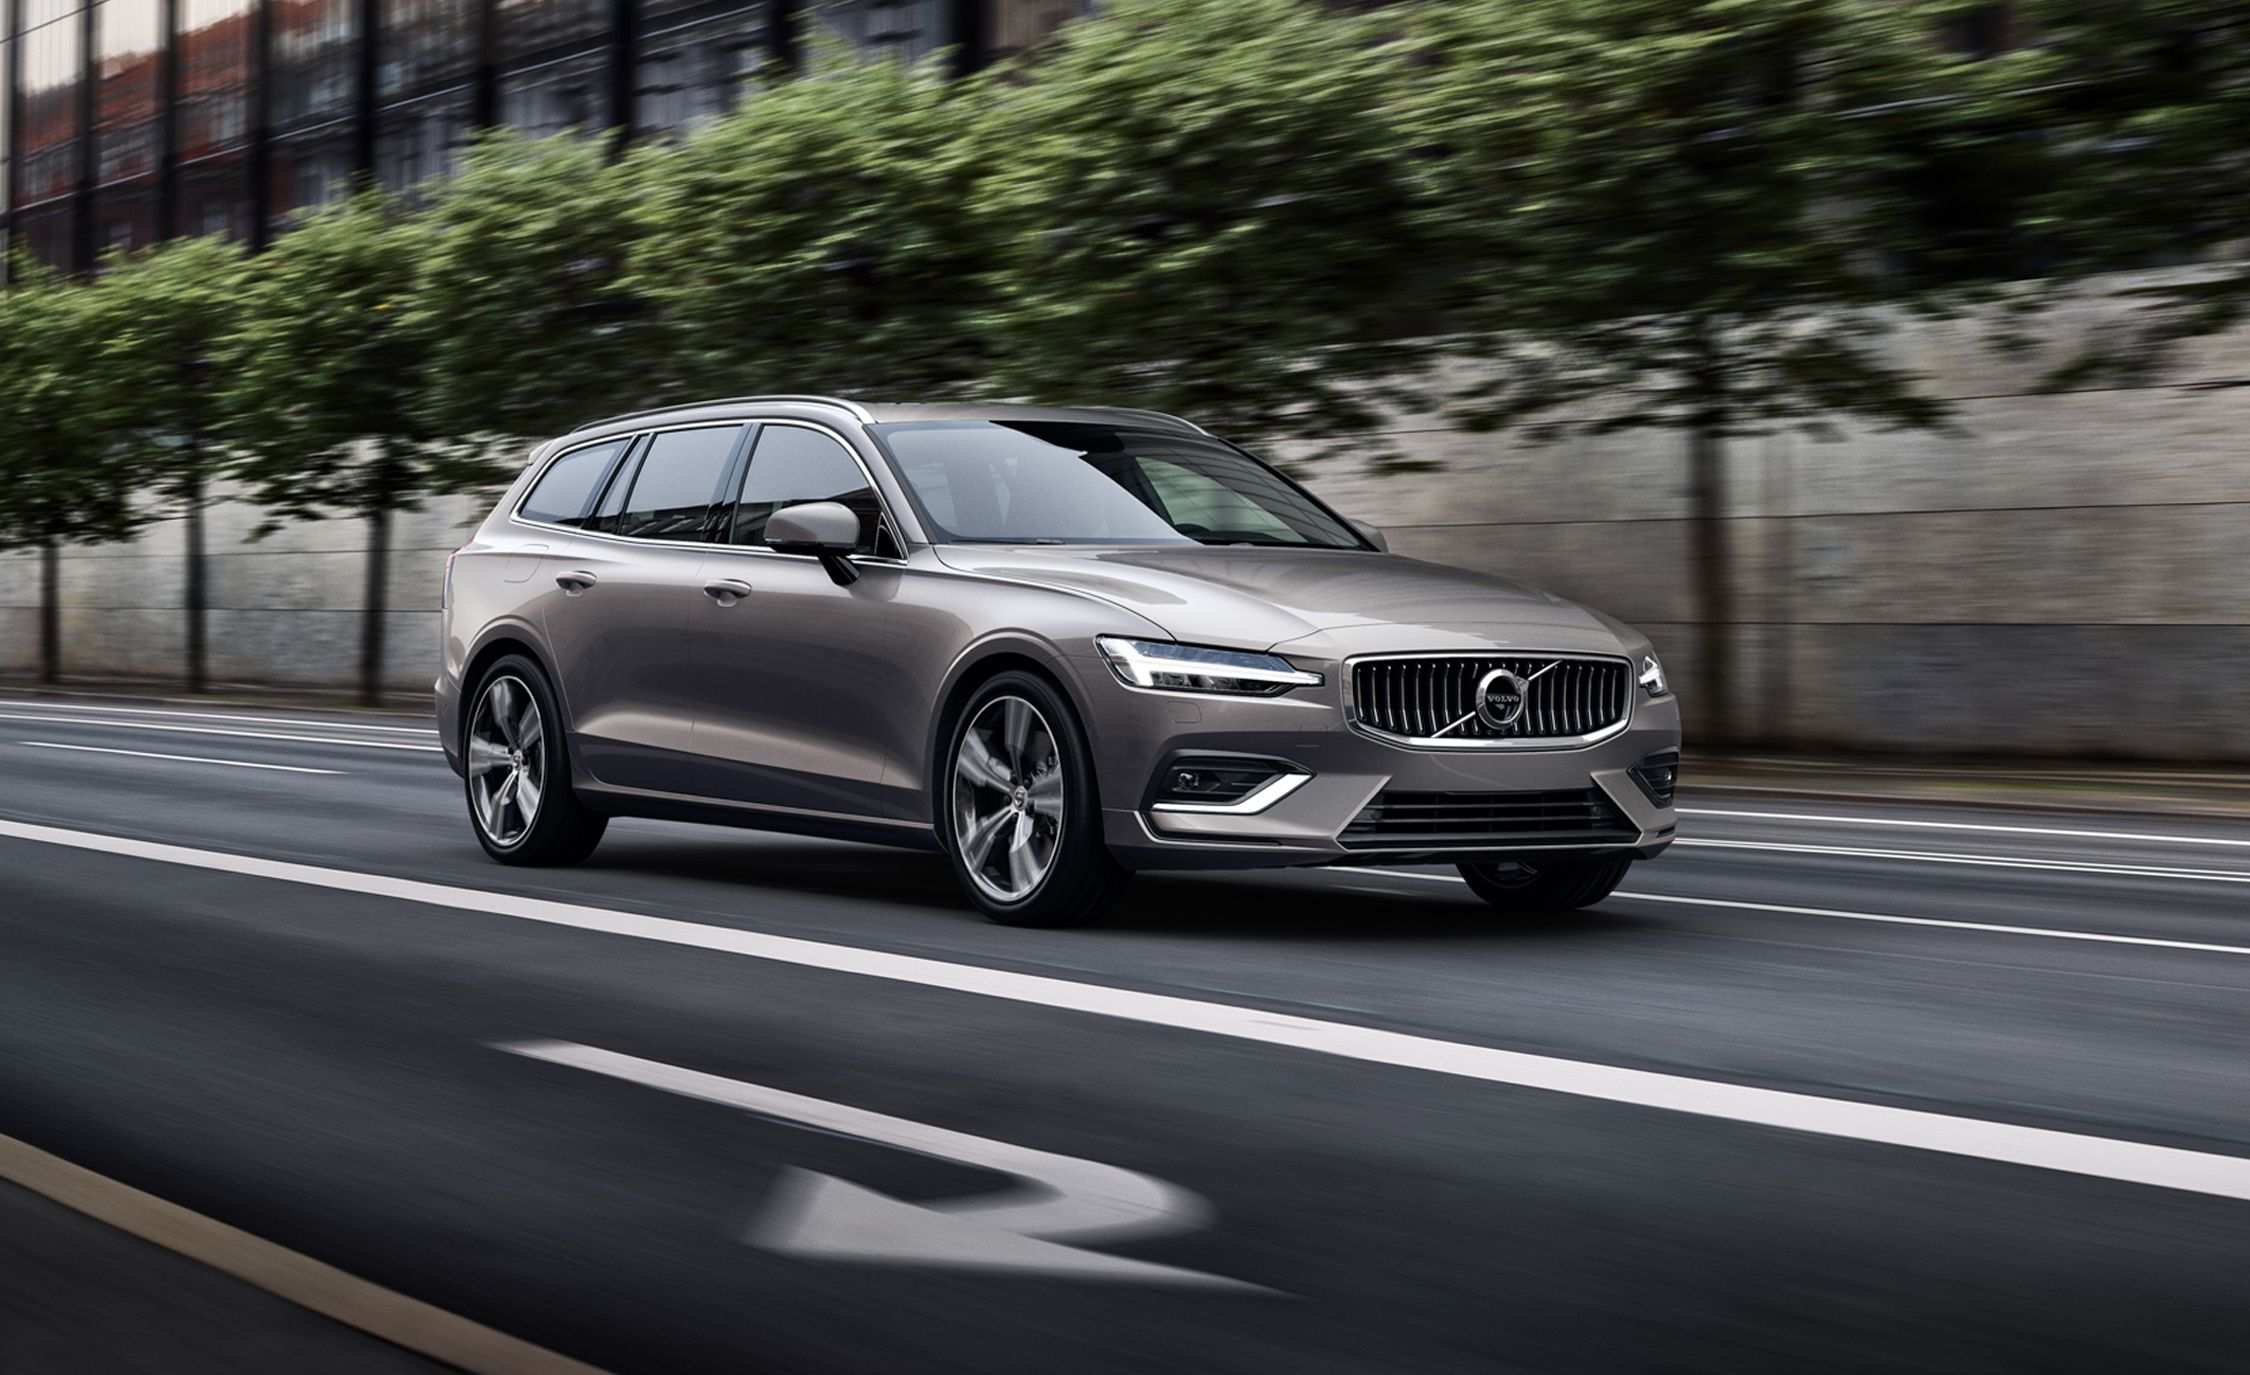 26 Great Volvo In 2019 Images with Volvo In 2019